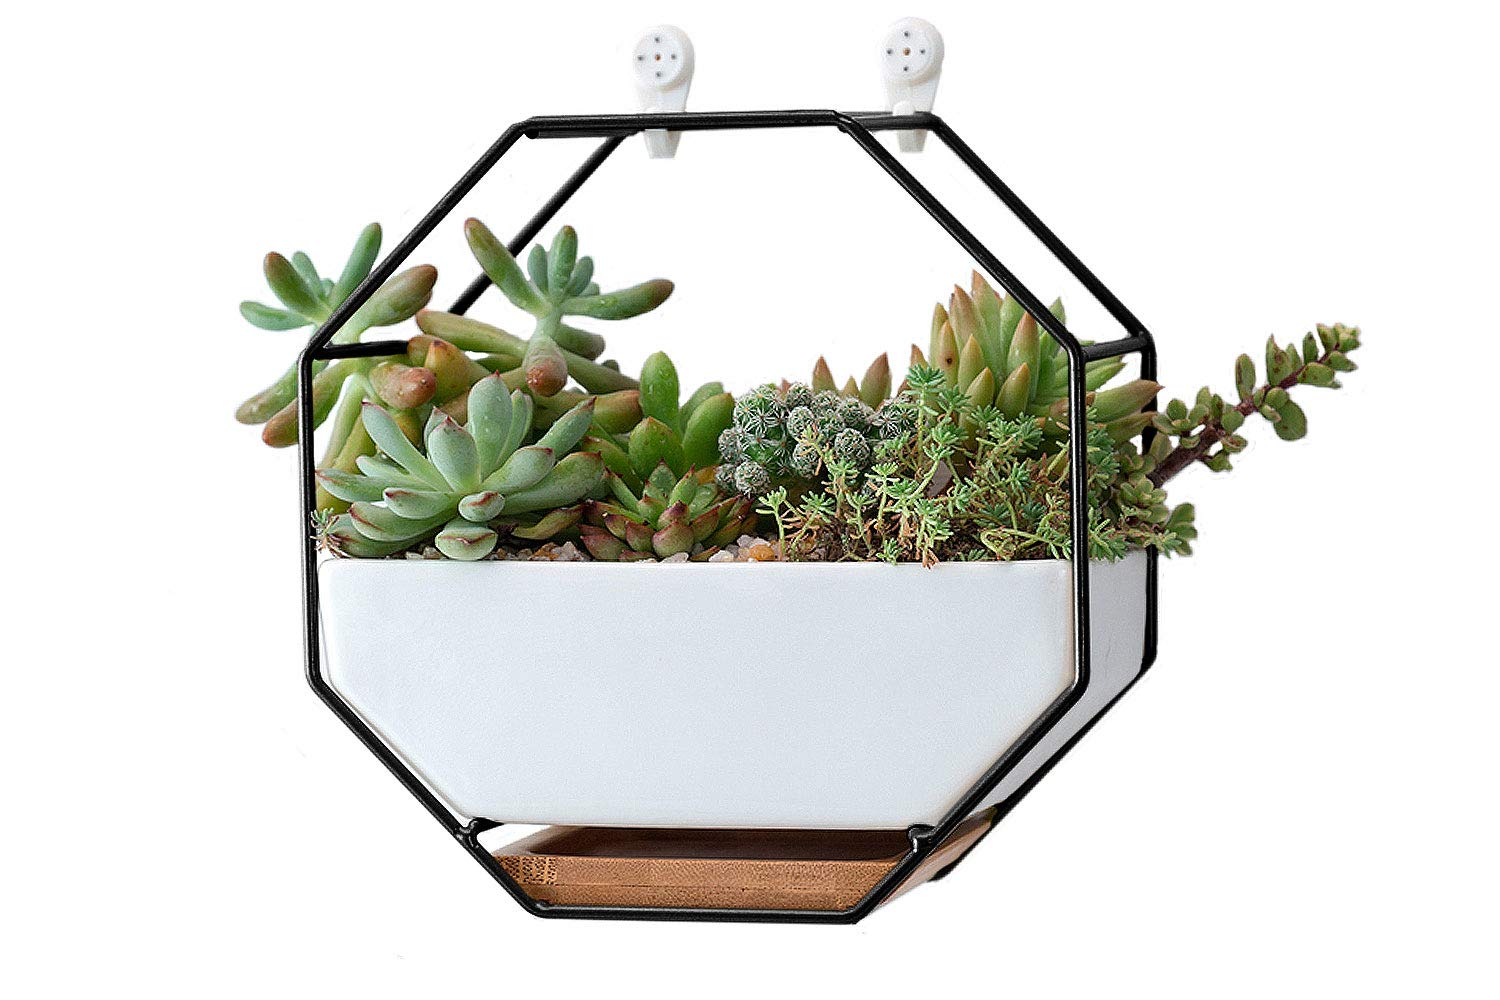 VanEnjoy 7 White Ceramic Wall Planters Vase and Copper,Drainage Hole with Bamboo Tray – Succulent Pot Air Plants Mini Cactus Artificial Flowers Hanging Geometric Hexagon Wall Decor Black Metal